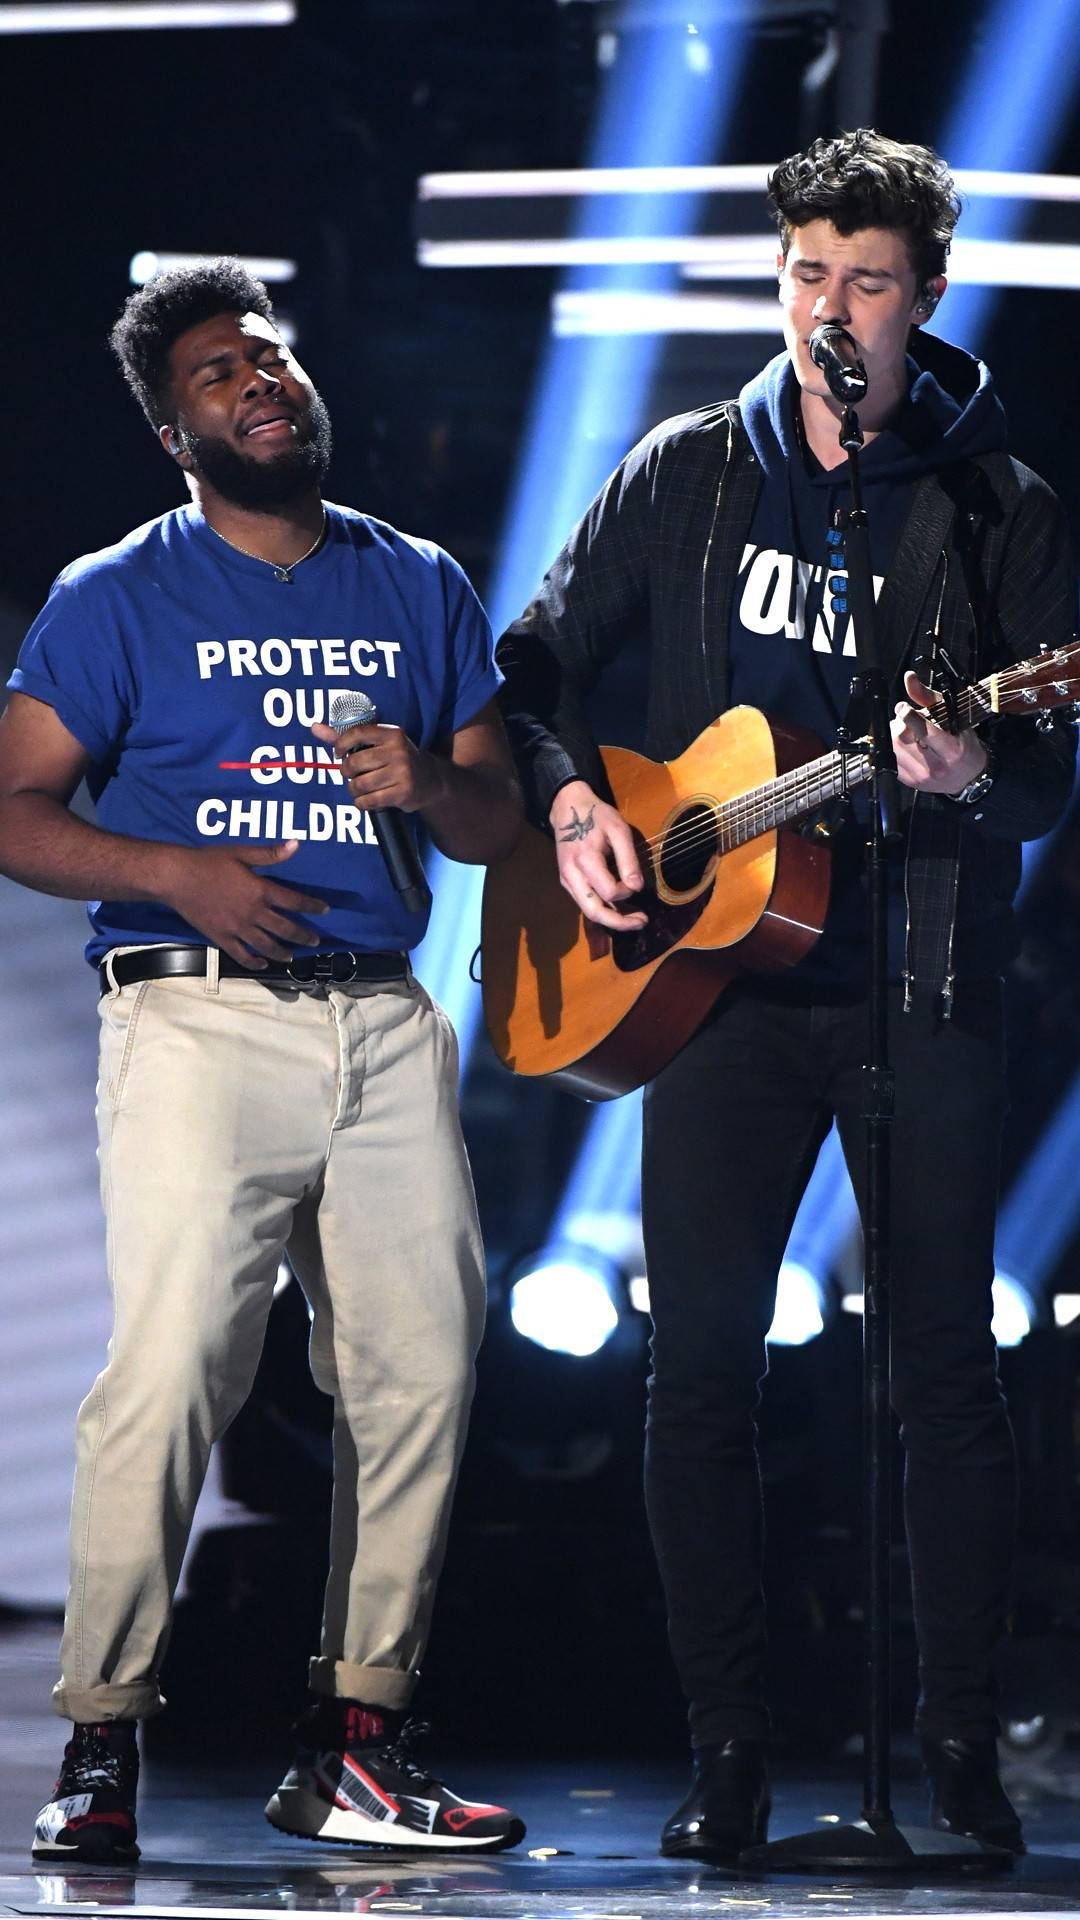 Shawn Mendes Pays Tribute to Victims of Gun Violence at 2018 Billboard Music Awards